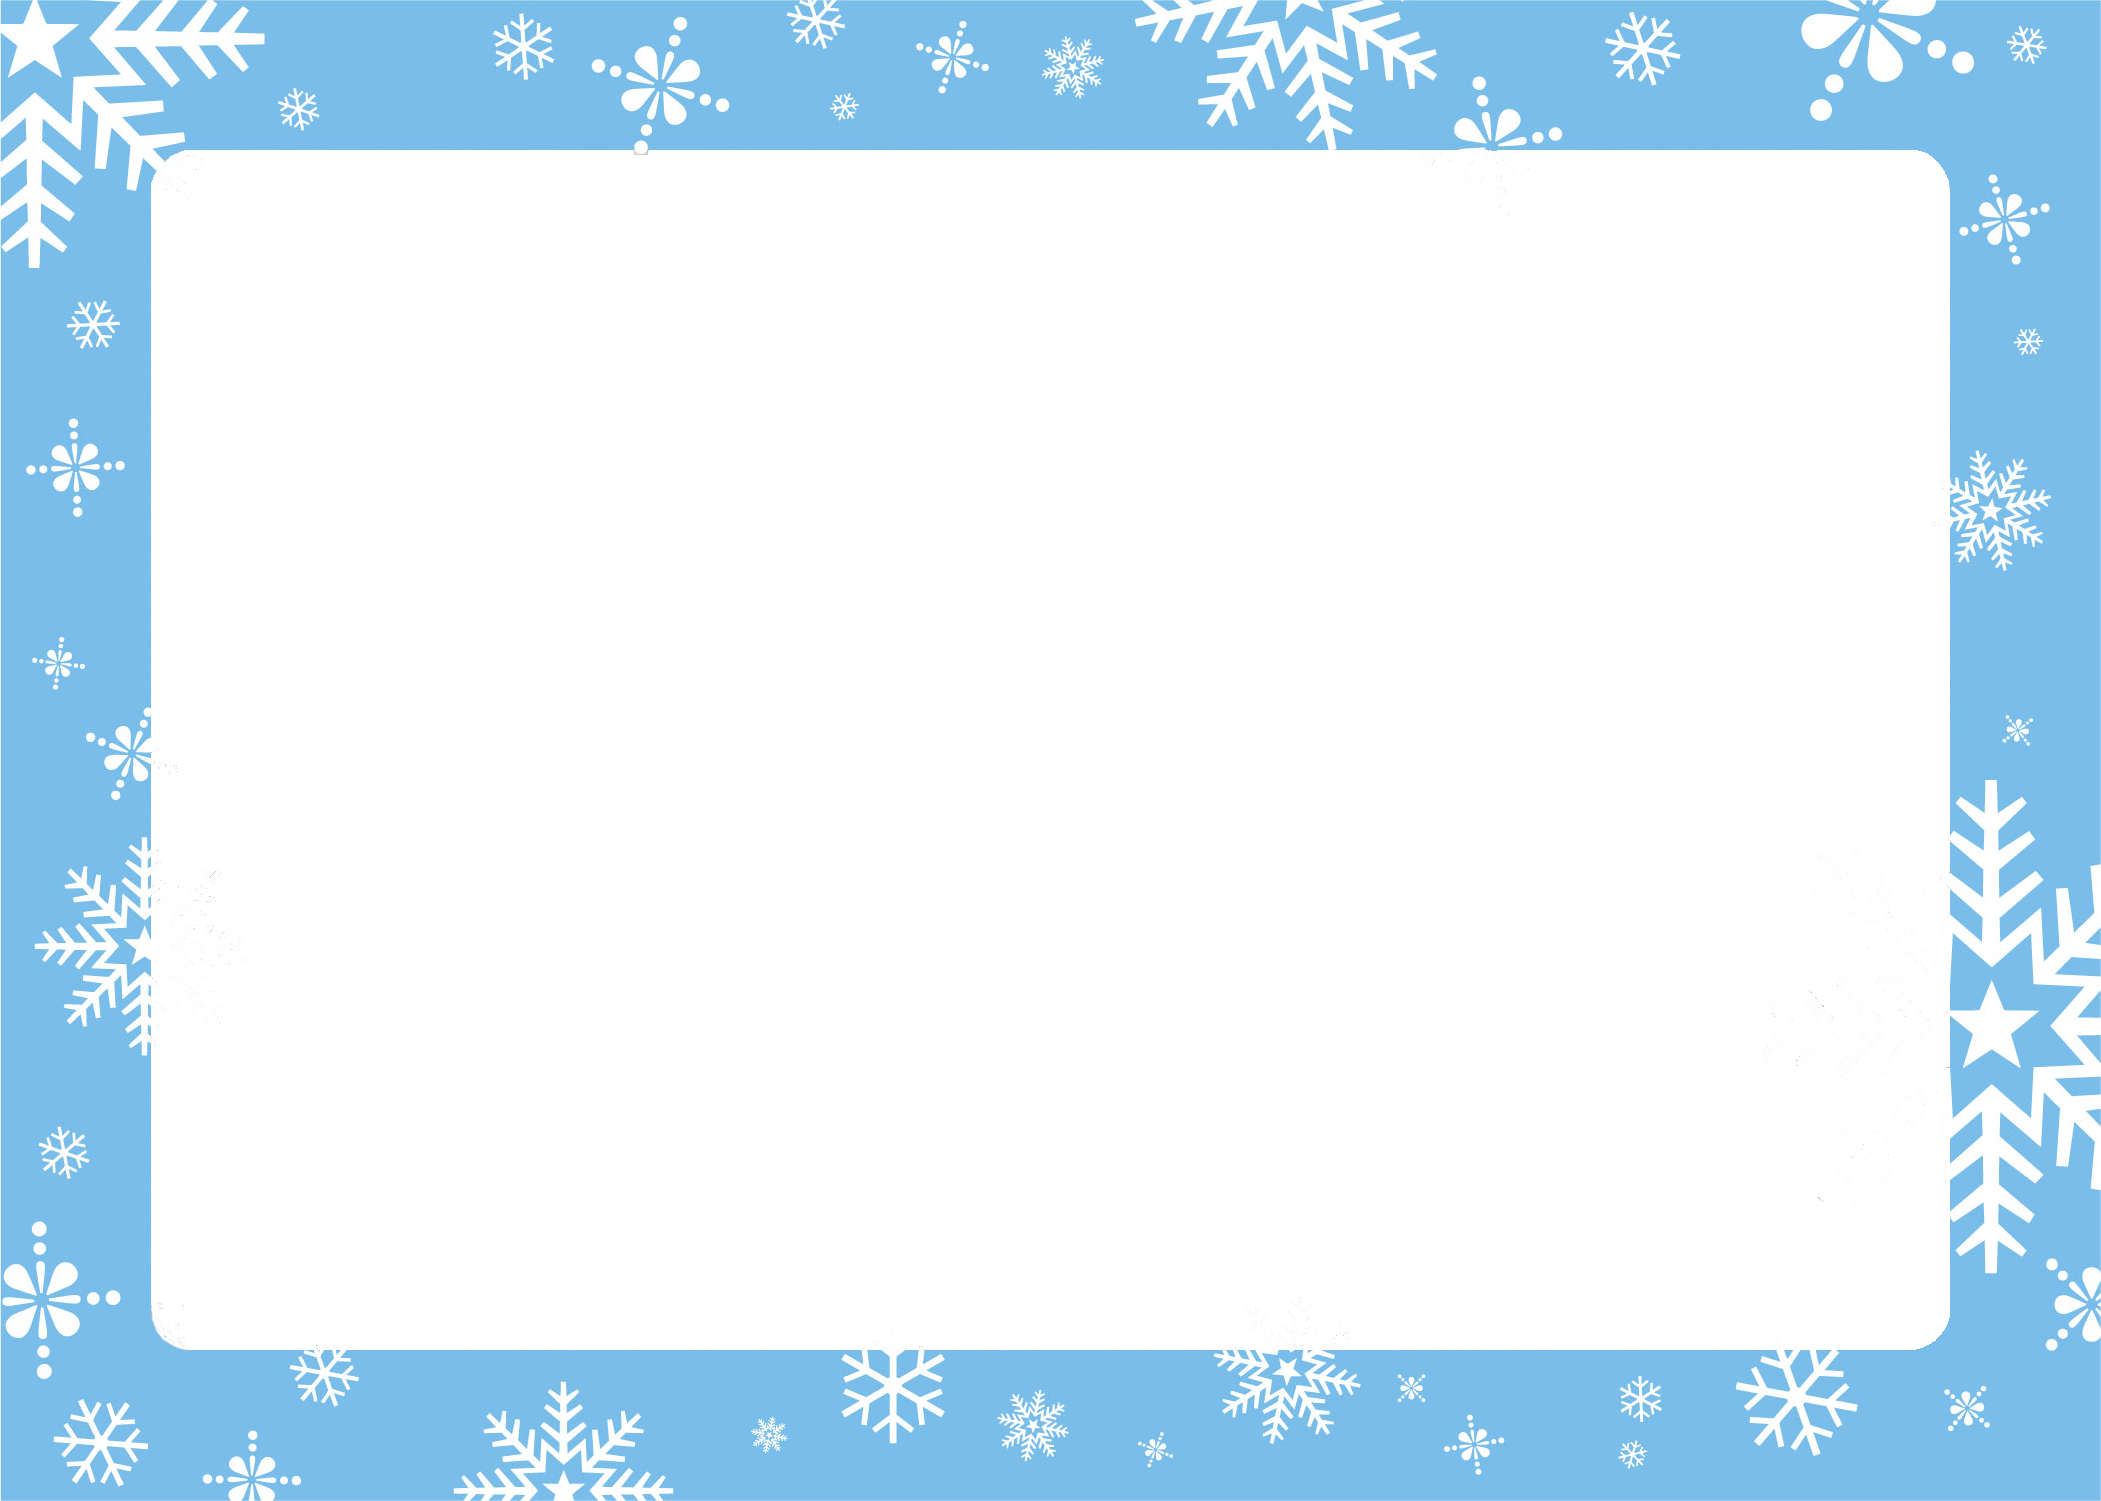 Free christmas picture border frames create holiday greeting free christmas picture border frames create holiday greeting card templates on zazzle kristyandbryce Image collections